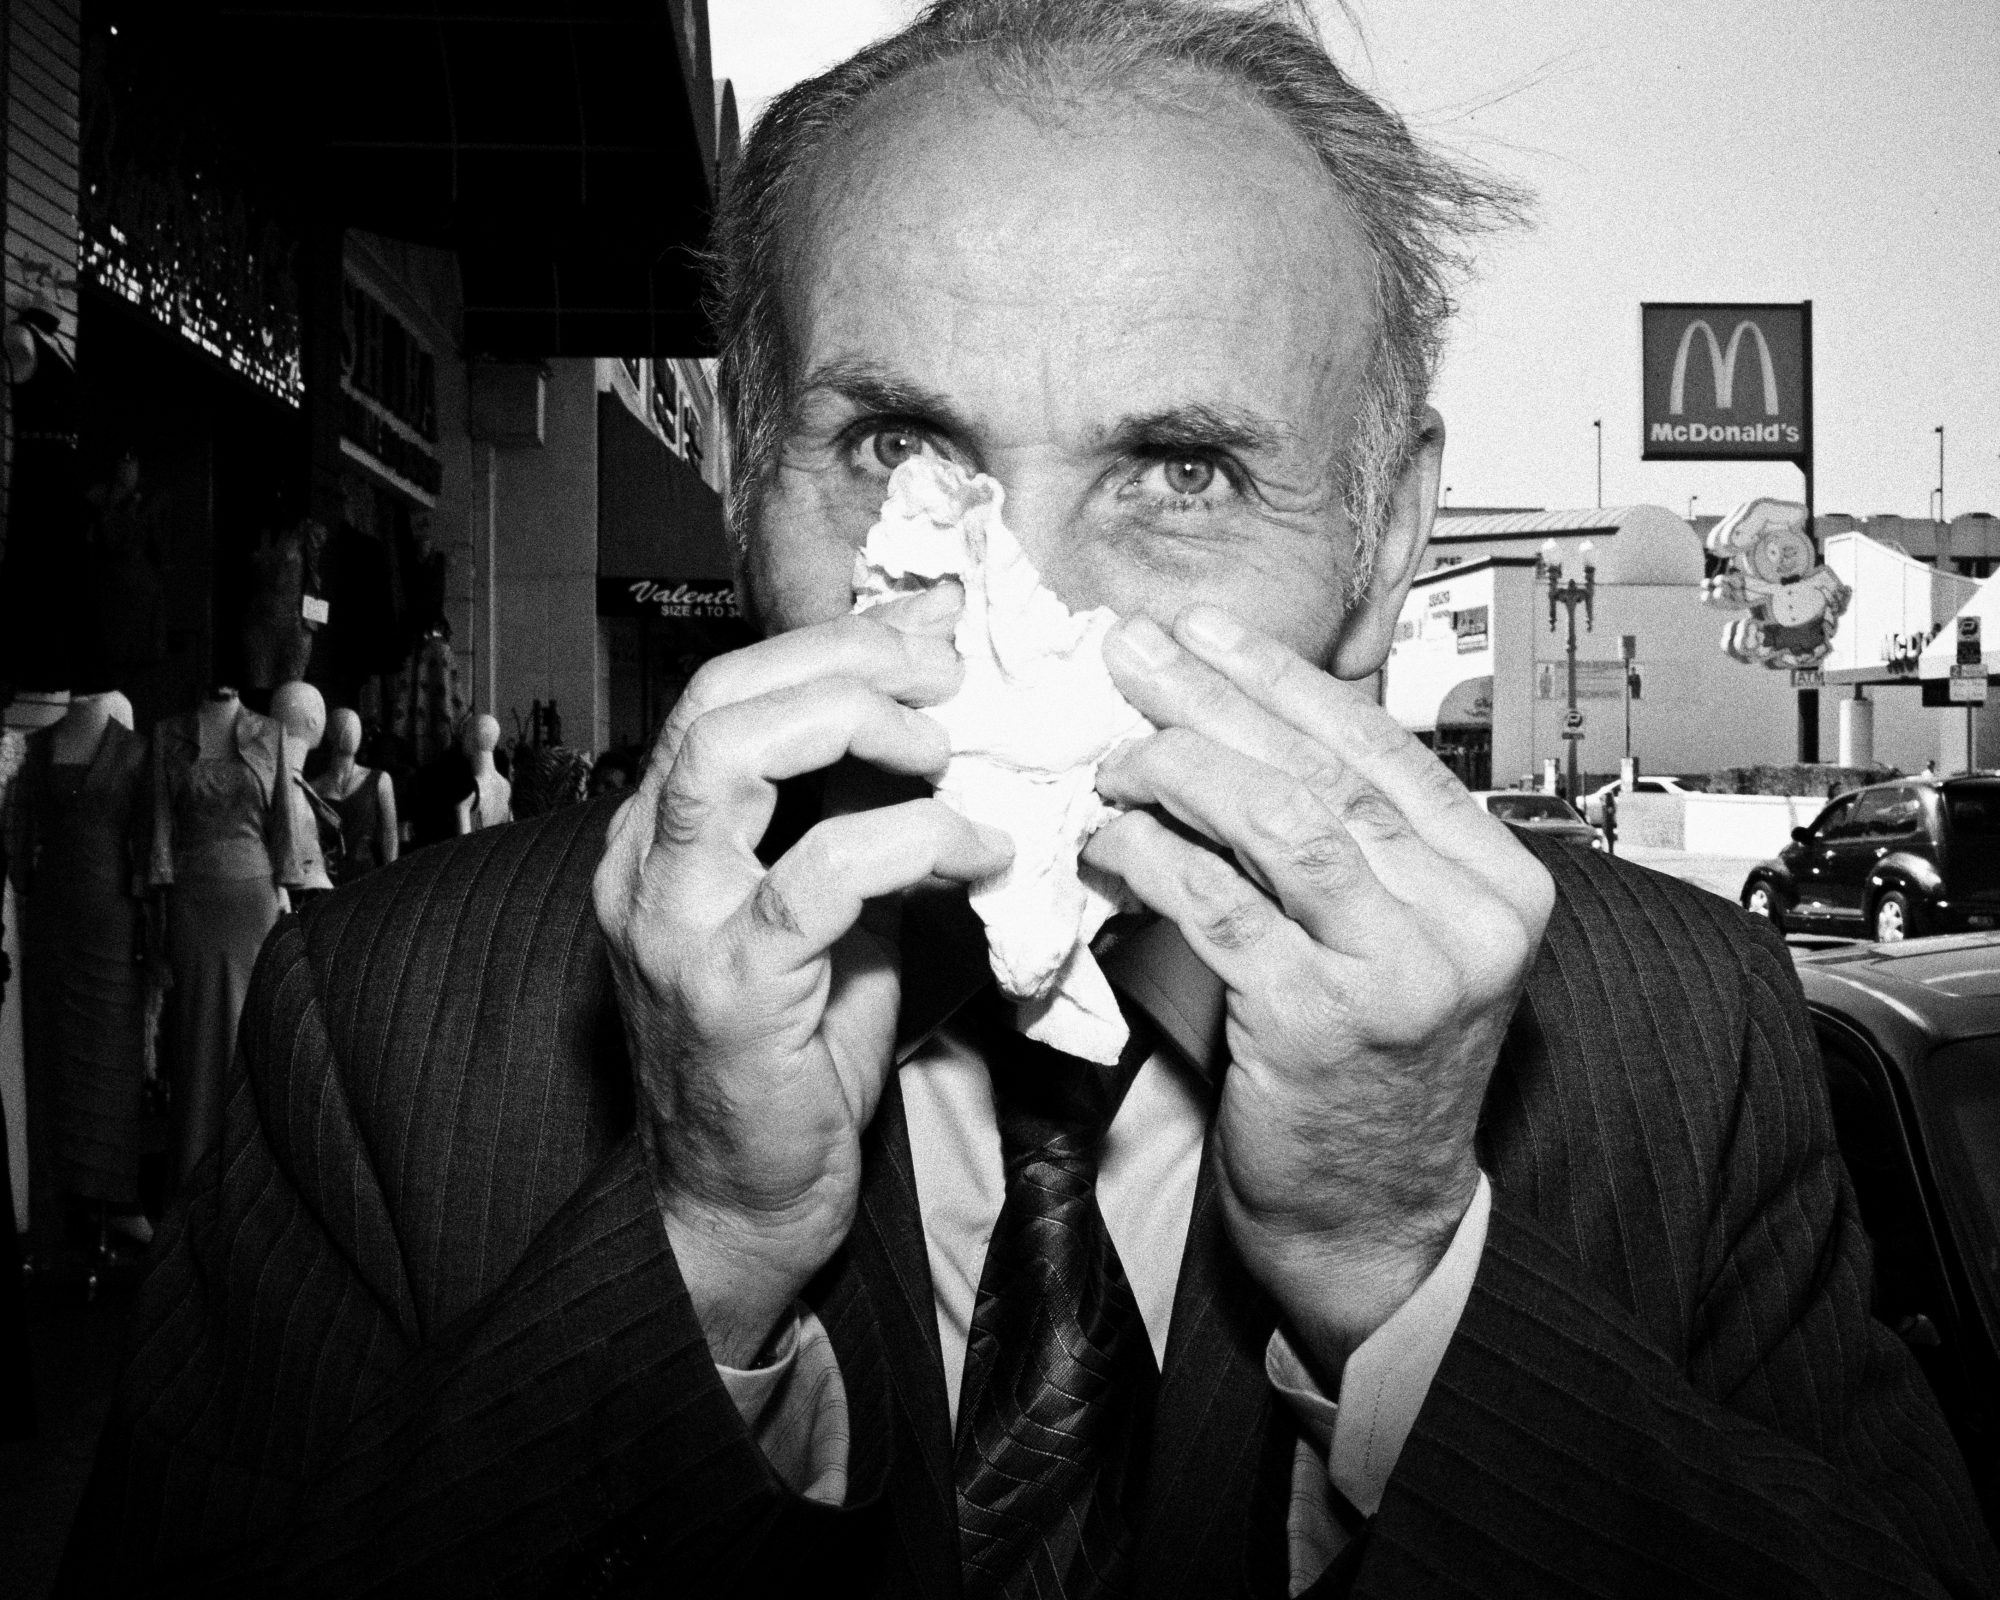 Downtown LA, 2012. Man blowing nose with tissue. Shot with Leica M9, flash, 35mm at 1 meters.